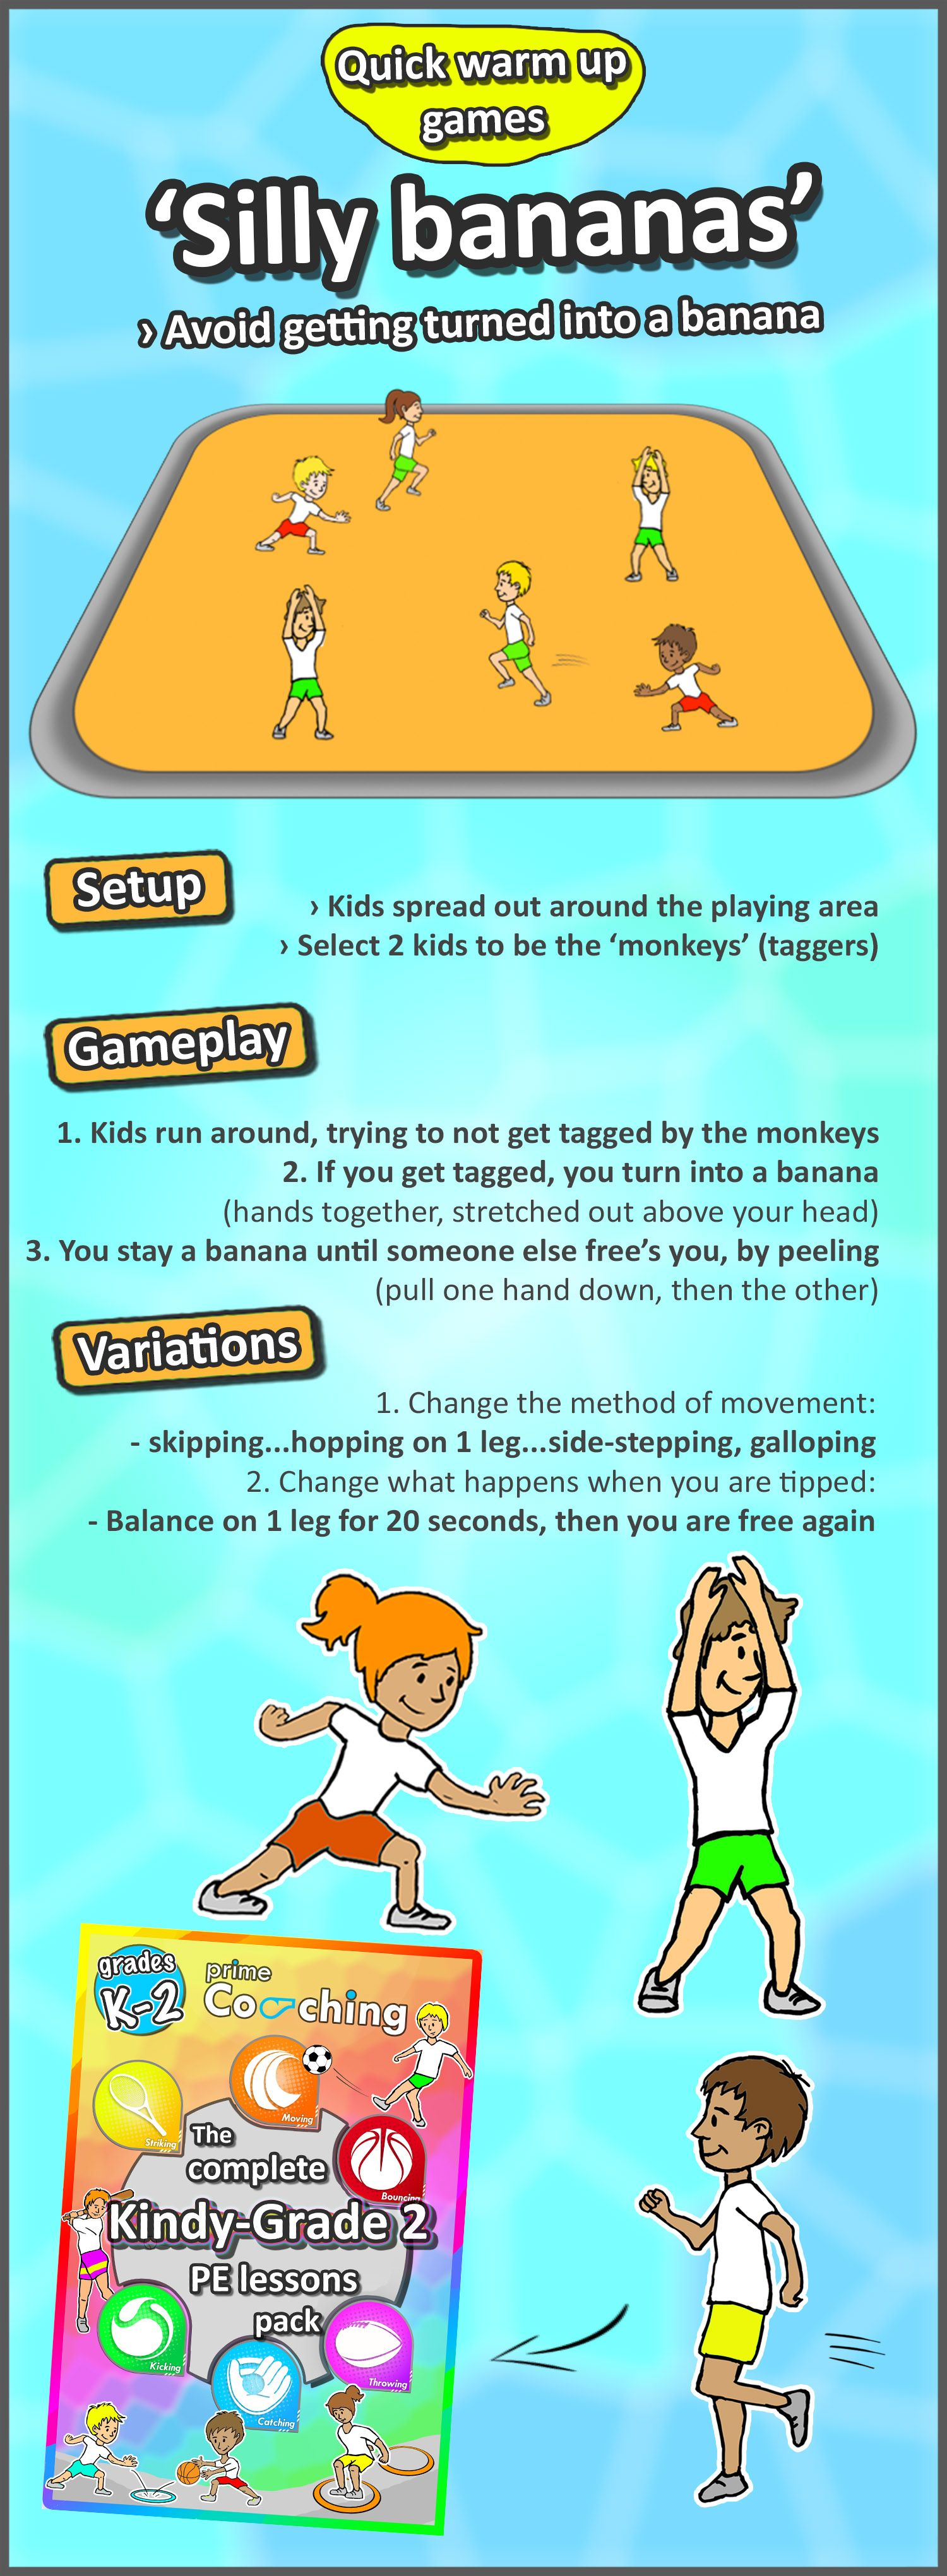 Kindergarten To Grade 2 Pe Games - Complete Sport Skill And